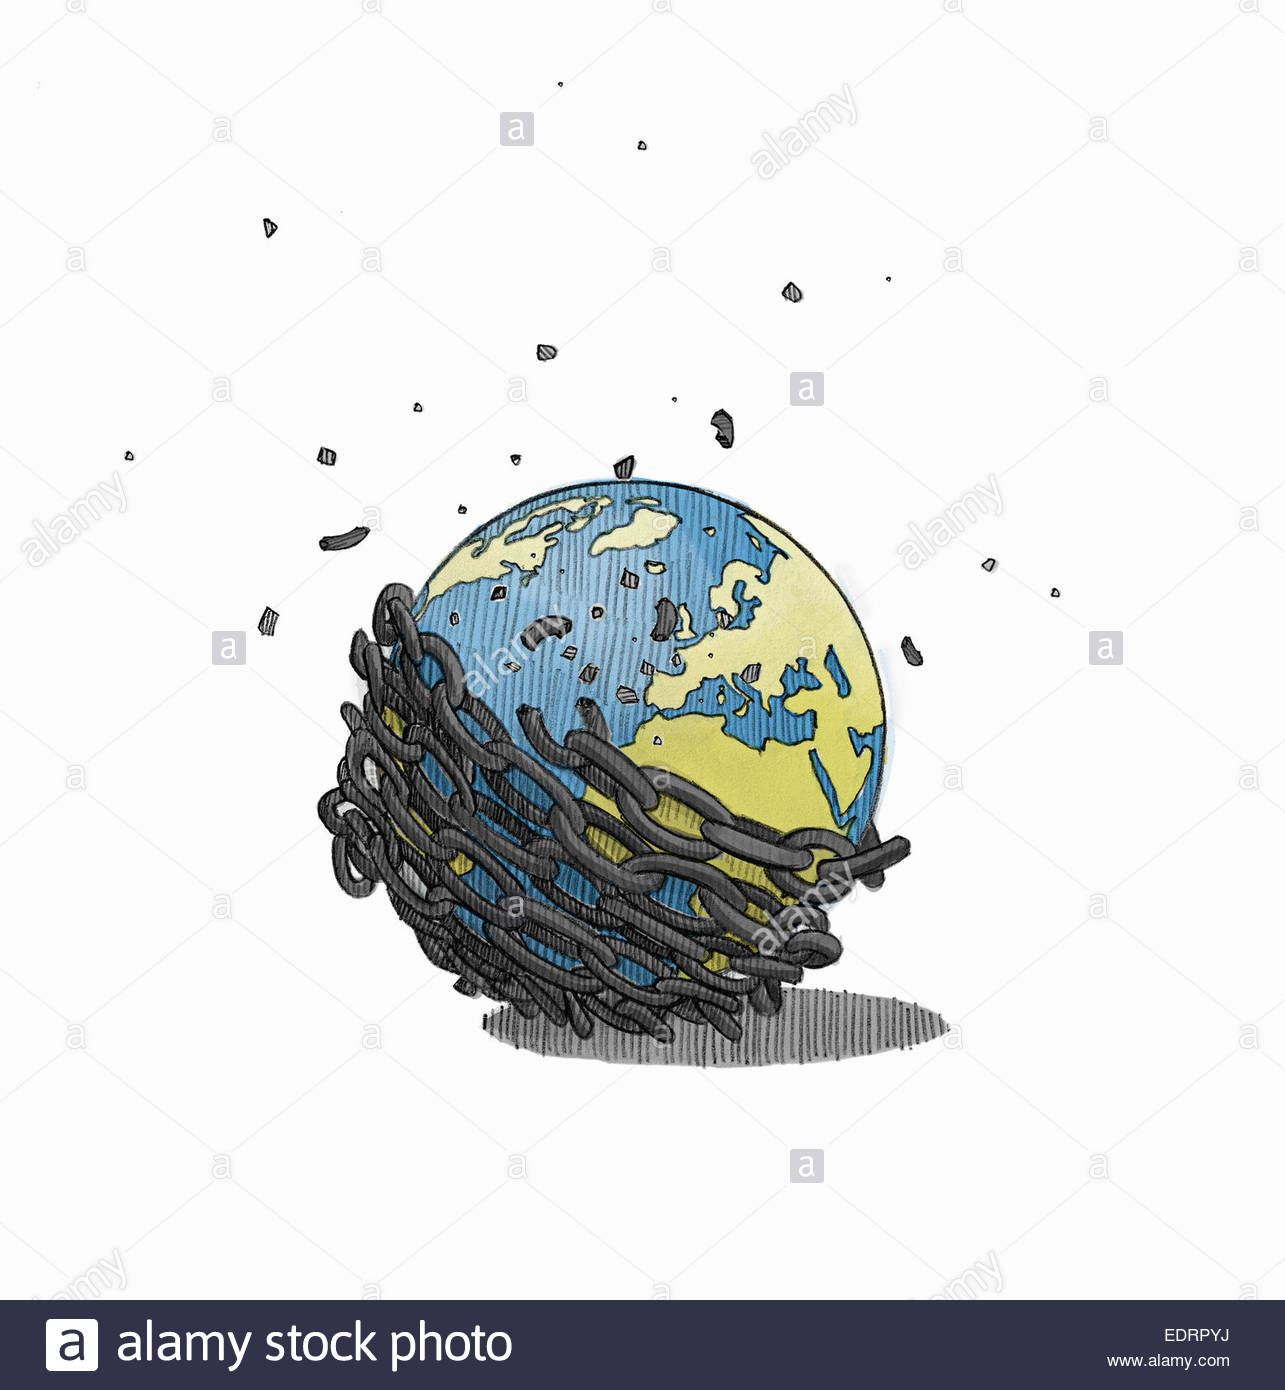 Globe breaking free from chains Stock Photo: 77354918 - Alamy